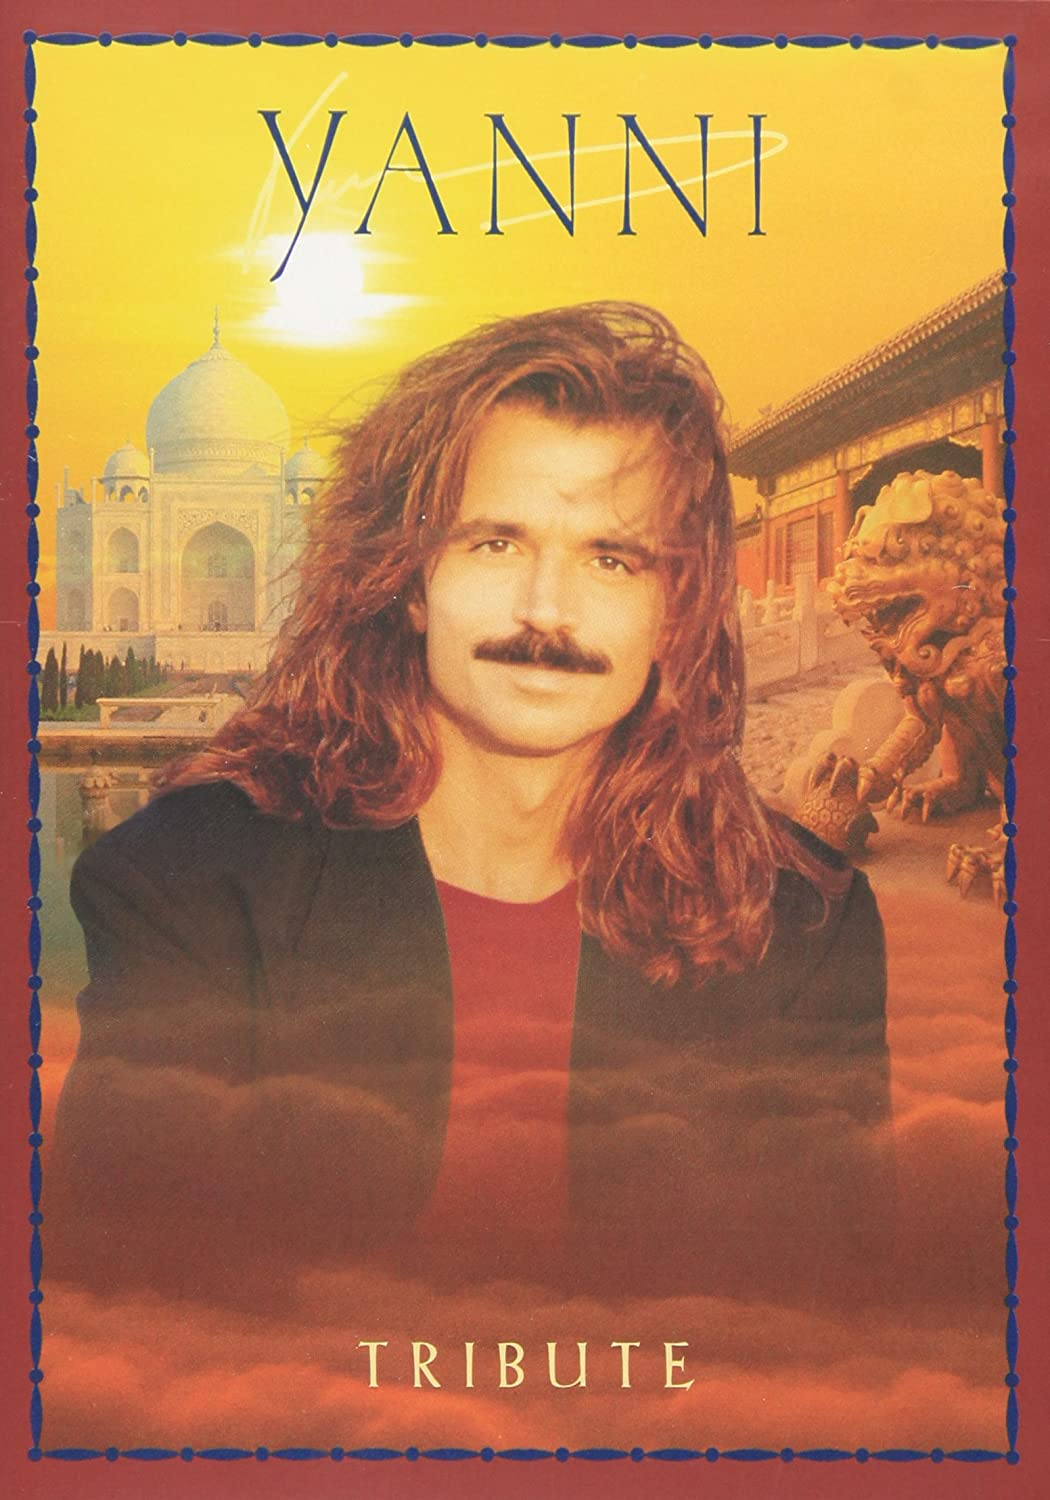 Yanni: Tribute Universal Music Canada VIDVUS 135 New Age / Meditation Pop